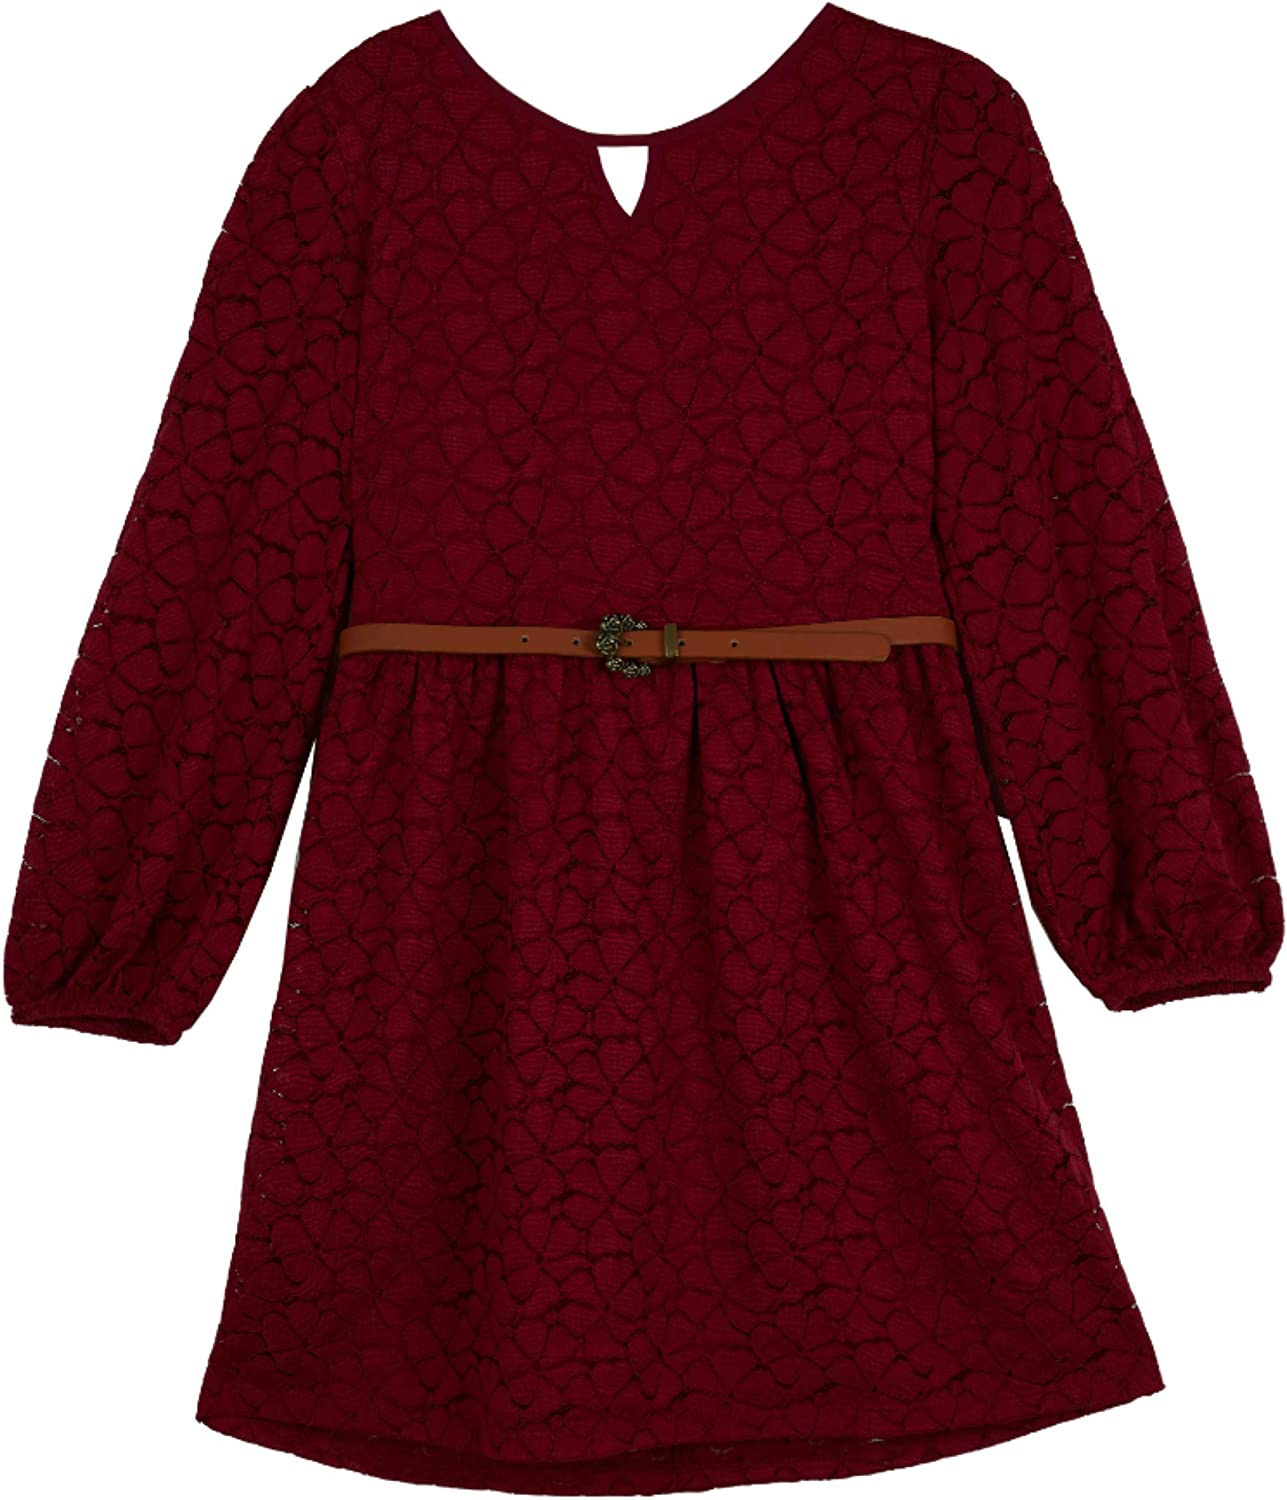 Amy Byer Girls' Allover Lace Fit and Flare Dress